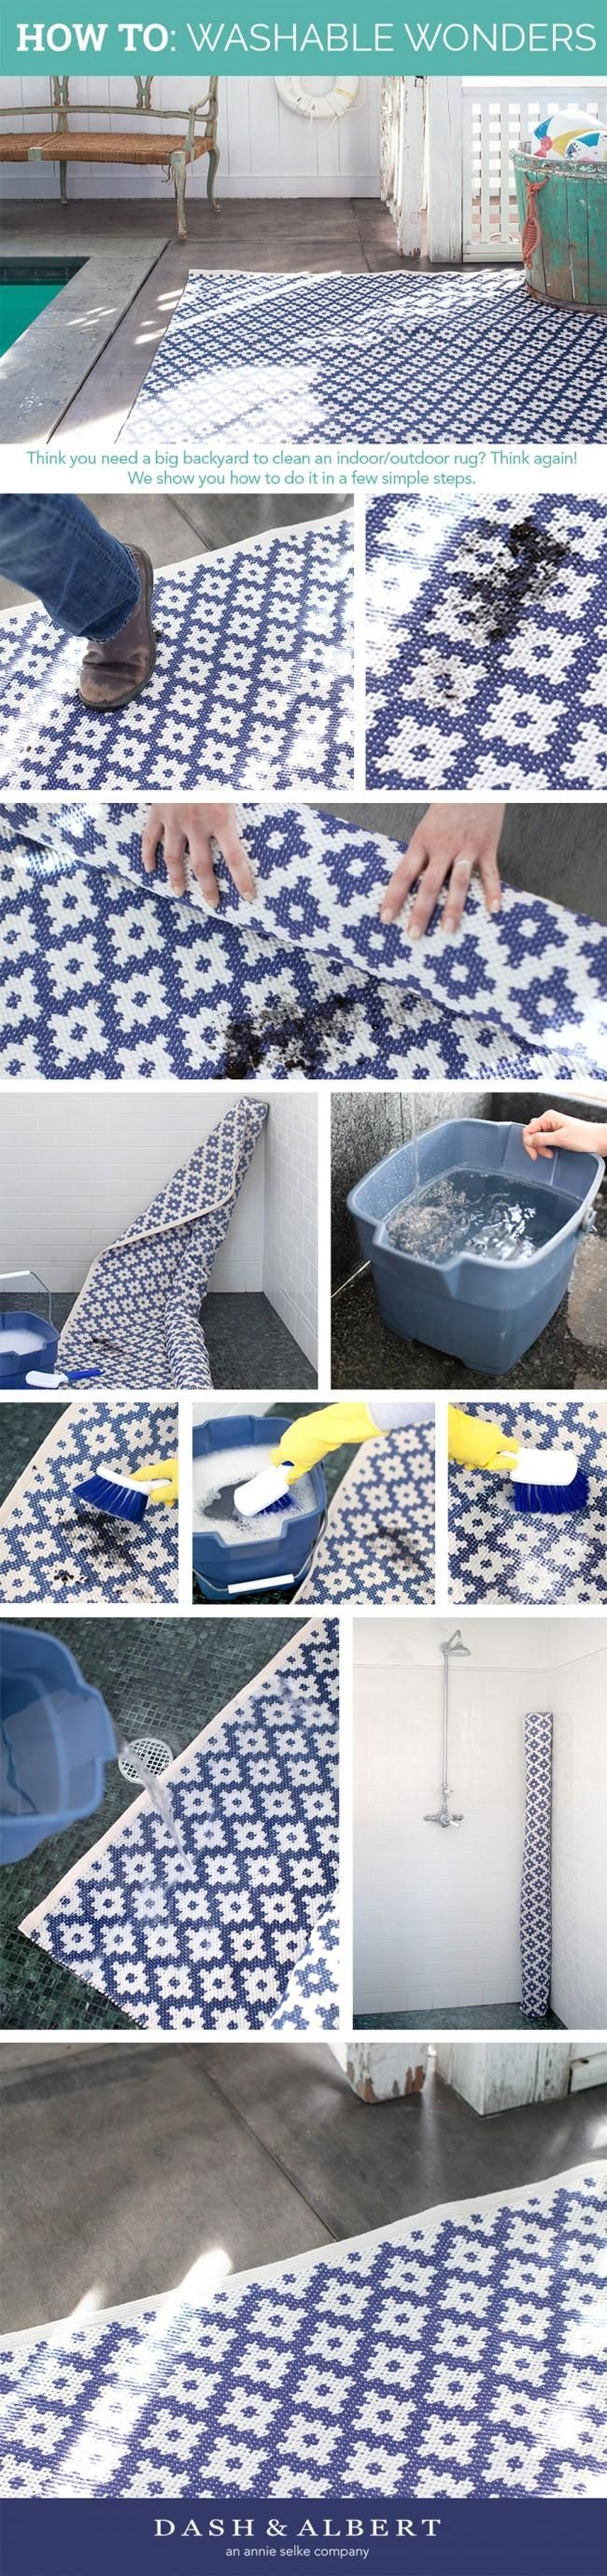 Washable Wonders: How to Clean a Rug in Small Space. Well, hang on to your socks, stylephiles, because we've got some ped-blowing news: it's actually super easy to clean an indoor/outdoor rug—even a big boy, like our Samode Denim, shown here—inside your shower or tub. Here's how our apartment-dwelling staffers do it: